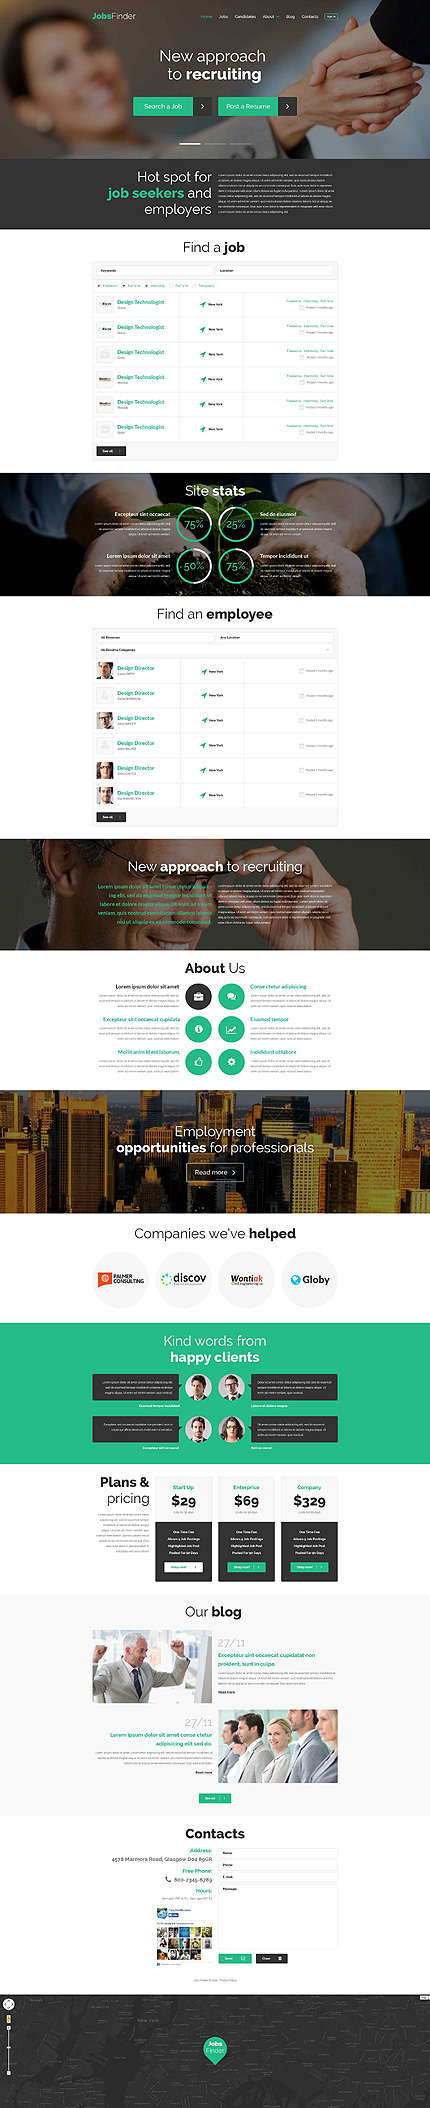 30 Newest WordPress Templates with Parallax Scrolling Effect 2015 ...